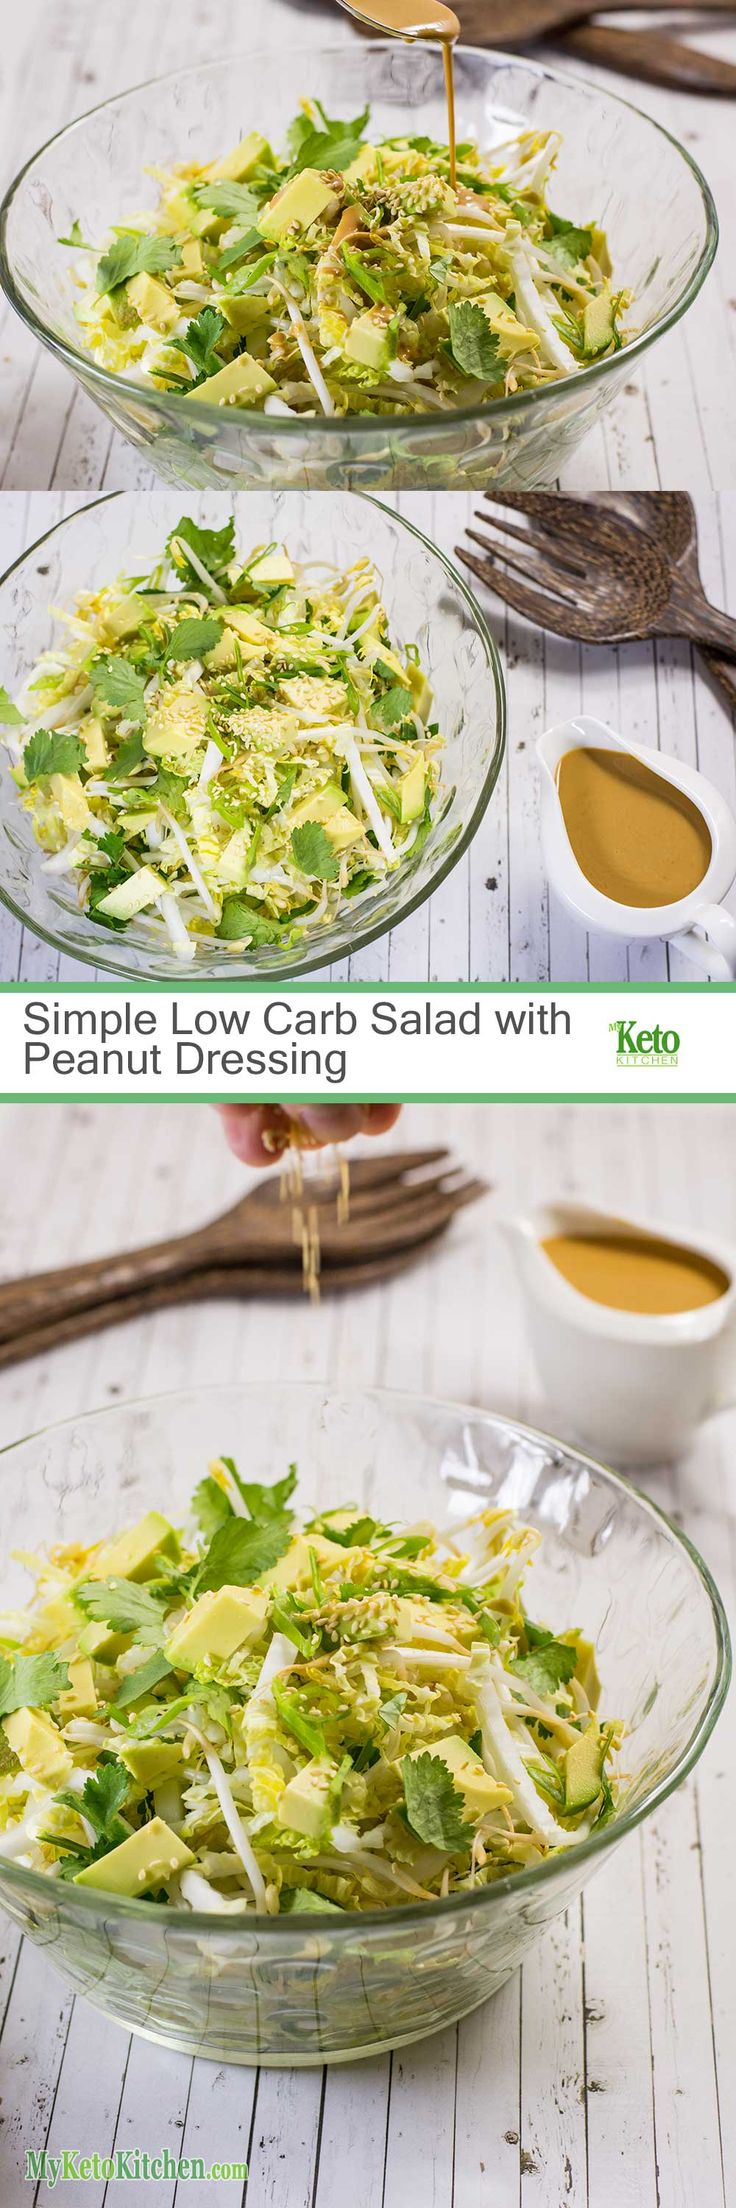 Best 25+ Asian cabbage salad ideas on Pinterest   Chinese cabbage salad, Asian coleslaw dressing ...